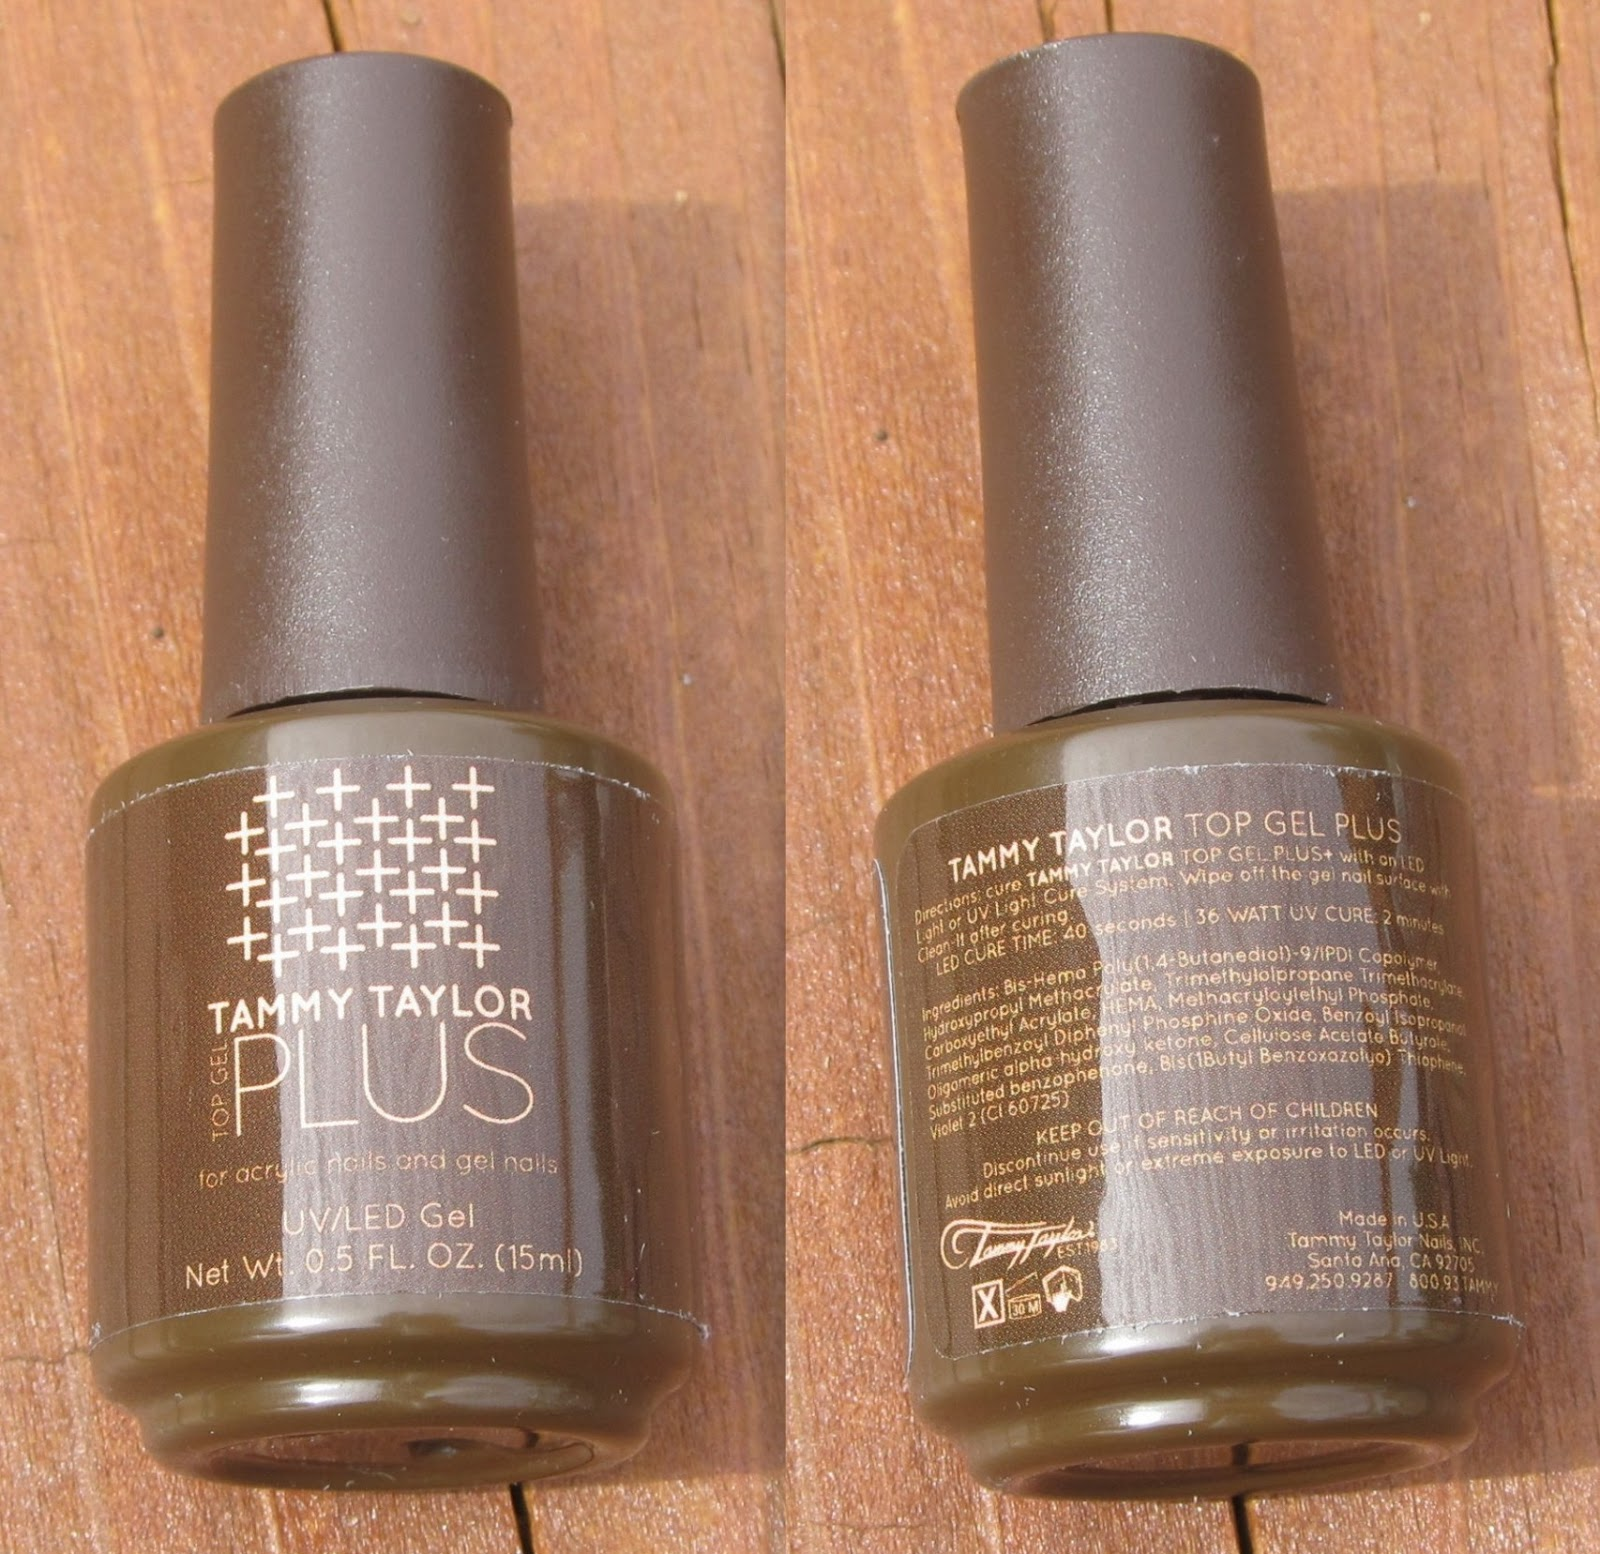 Tammy Taylor - Top Gel Plus, Clean-It, Clean Finish Buffing File, & Brush on Nail Glue